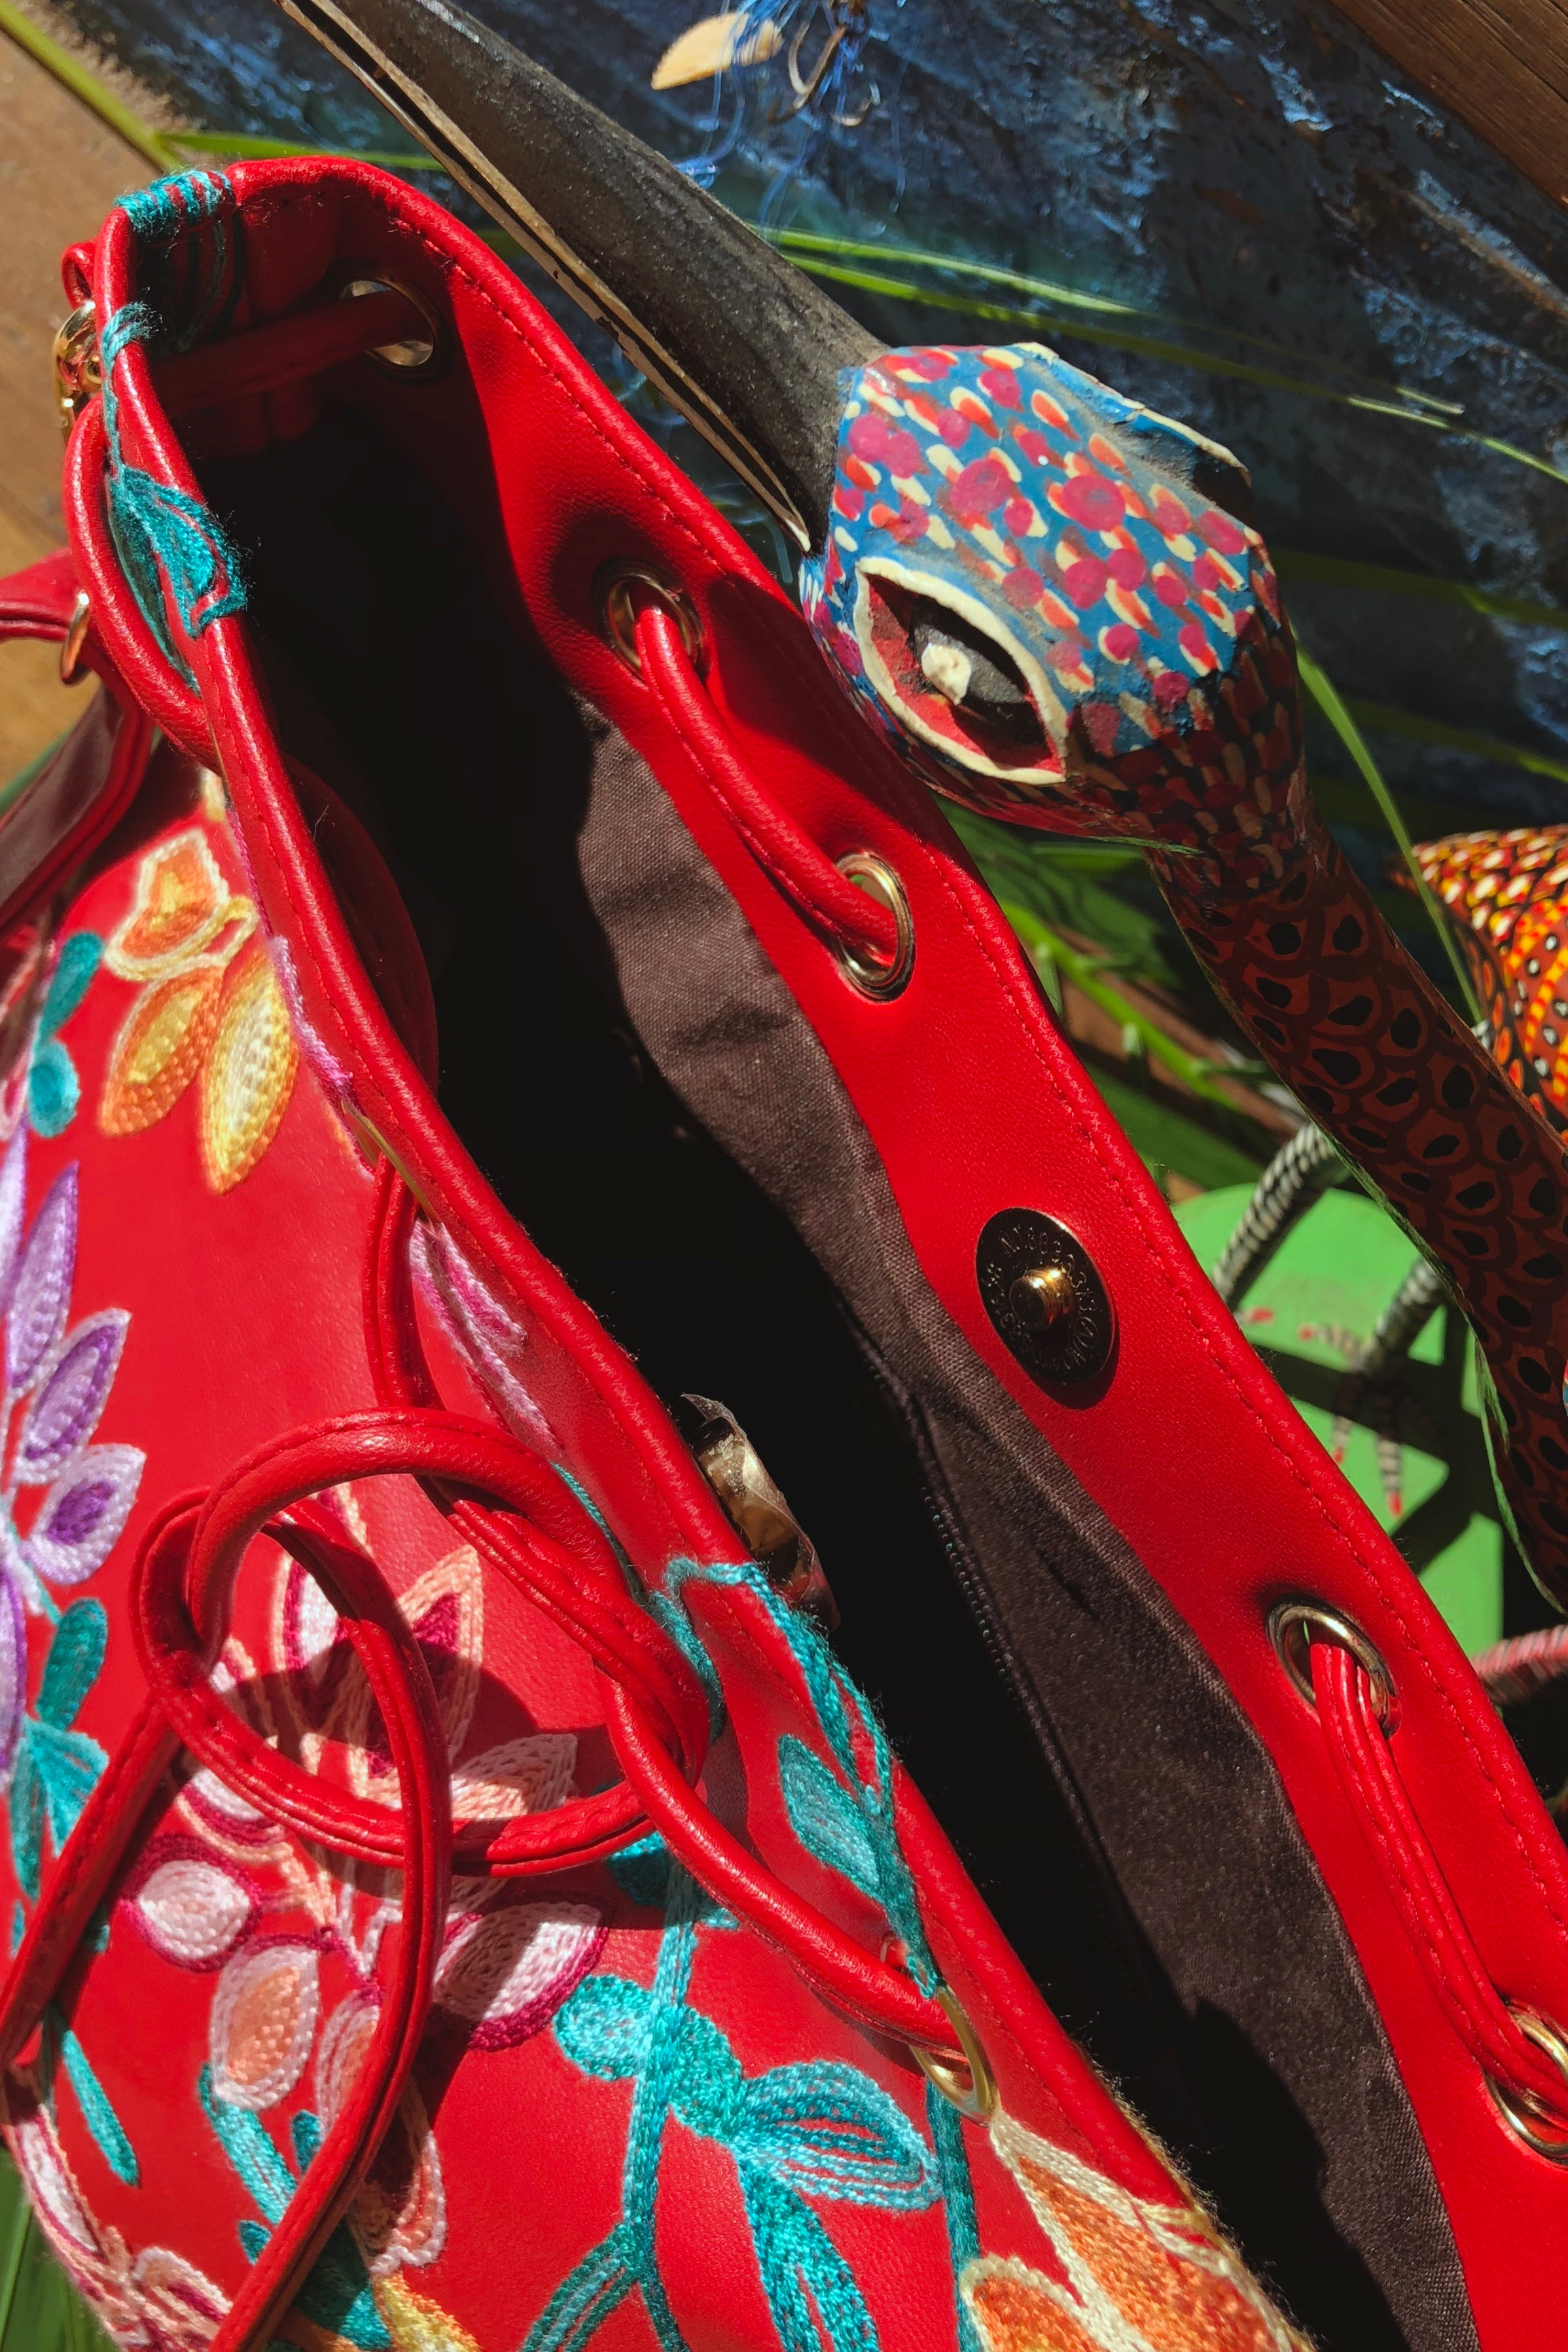 Yeah Bag Boho Colours in Red Vegan Leather with Bright Embroidery